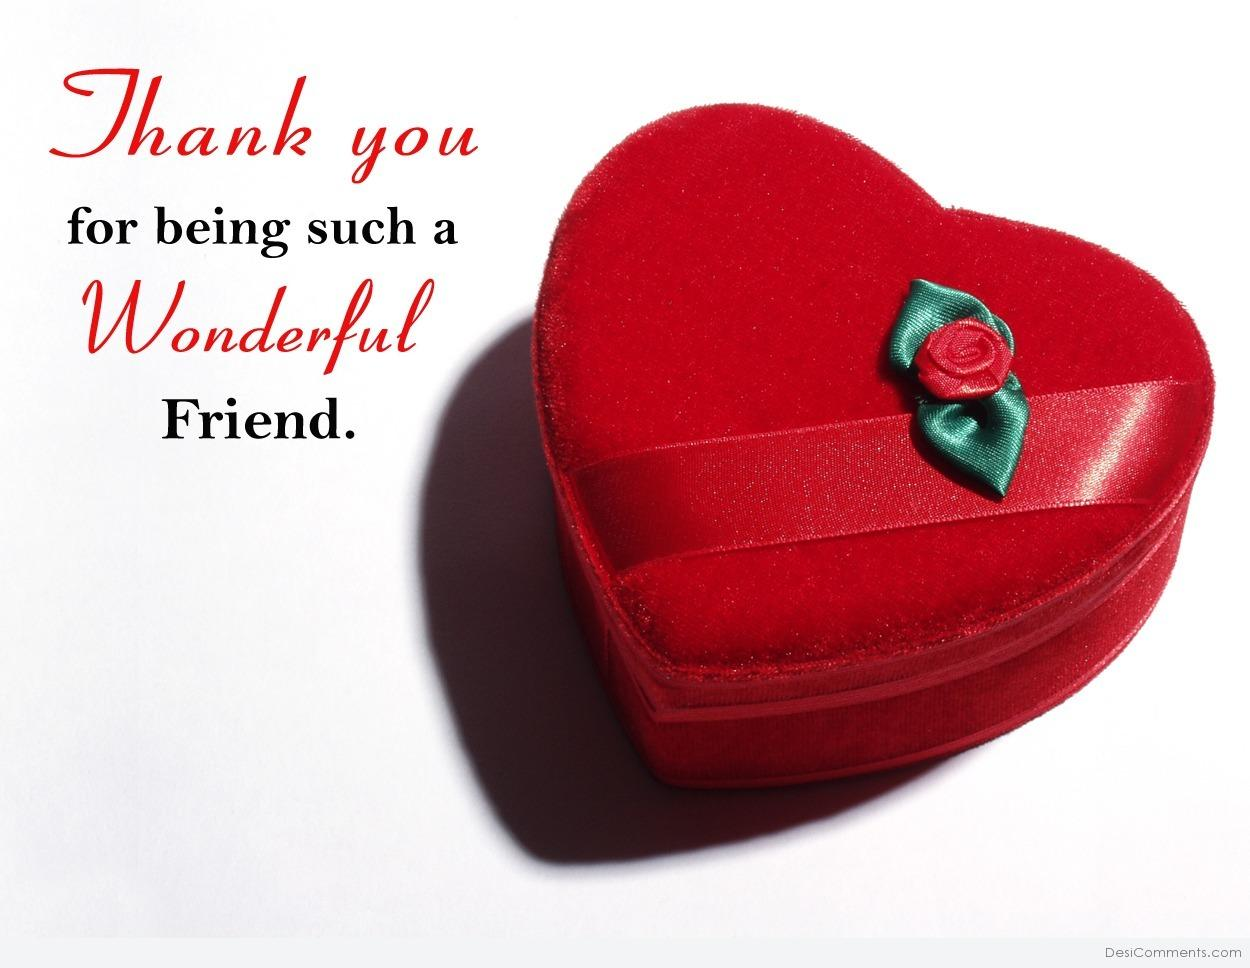 Thank you for being such a wonderful friend - DesiComments.com